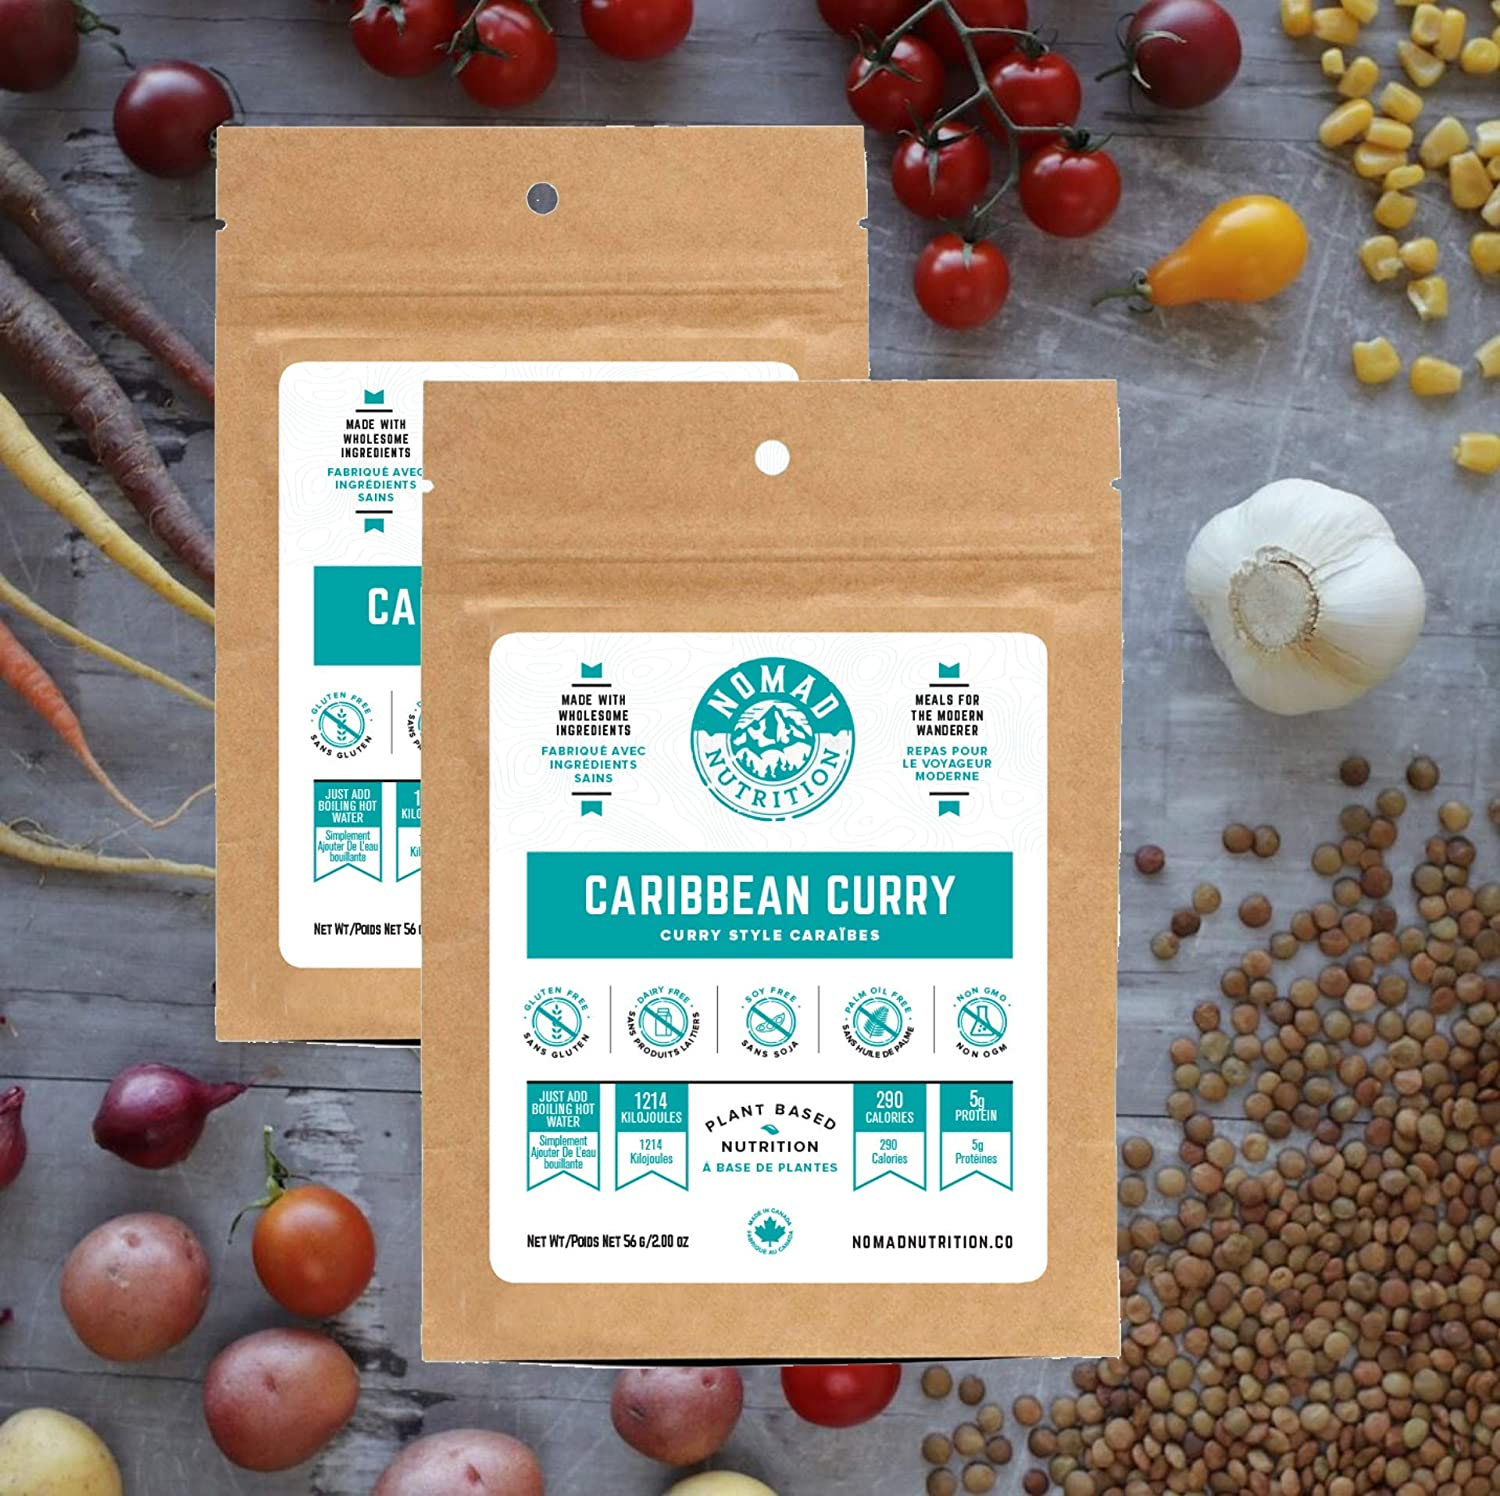 Nomad Nutrition Caribbean Curry - Plant Based, Protein Packed, Nutritious dehydrated Meal for Camping, Travel, Adventure on The go - 2 oz (2 Pack)